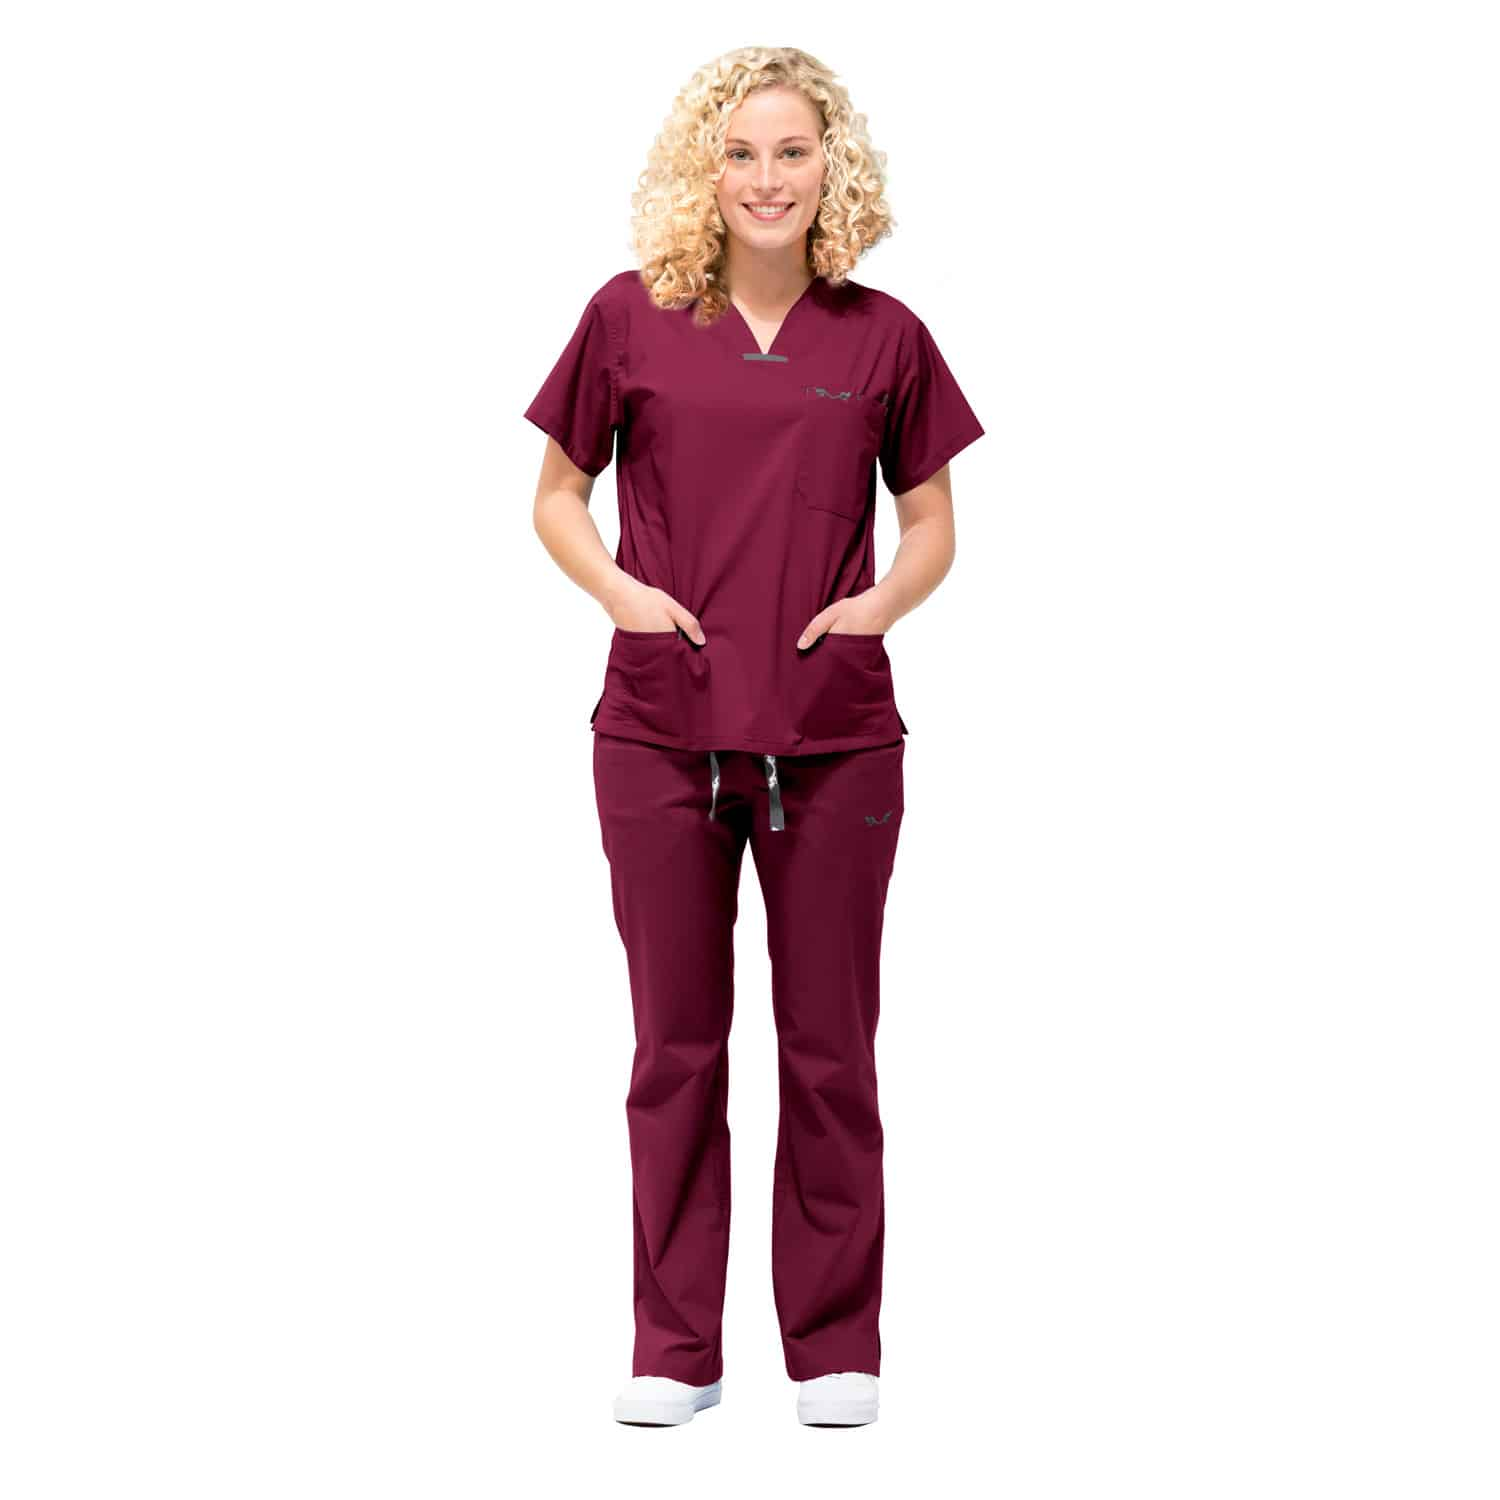 https://static.praxisdienst.com/out/pictures/generated/product/3/1500_1500_100/canberoo-frauen-new-colors-2020-front-wine(1).jpg